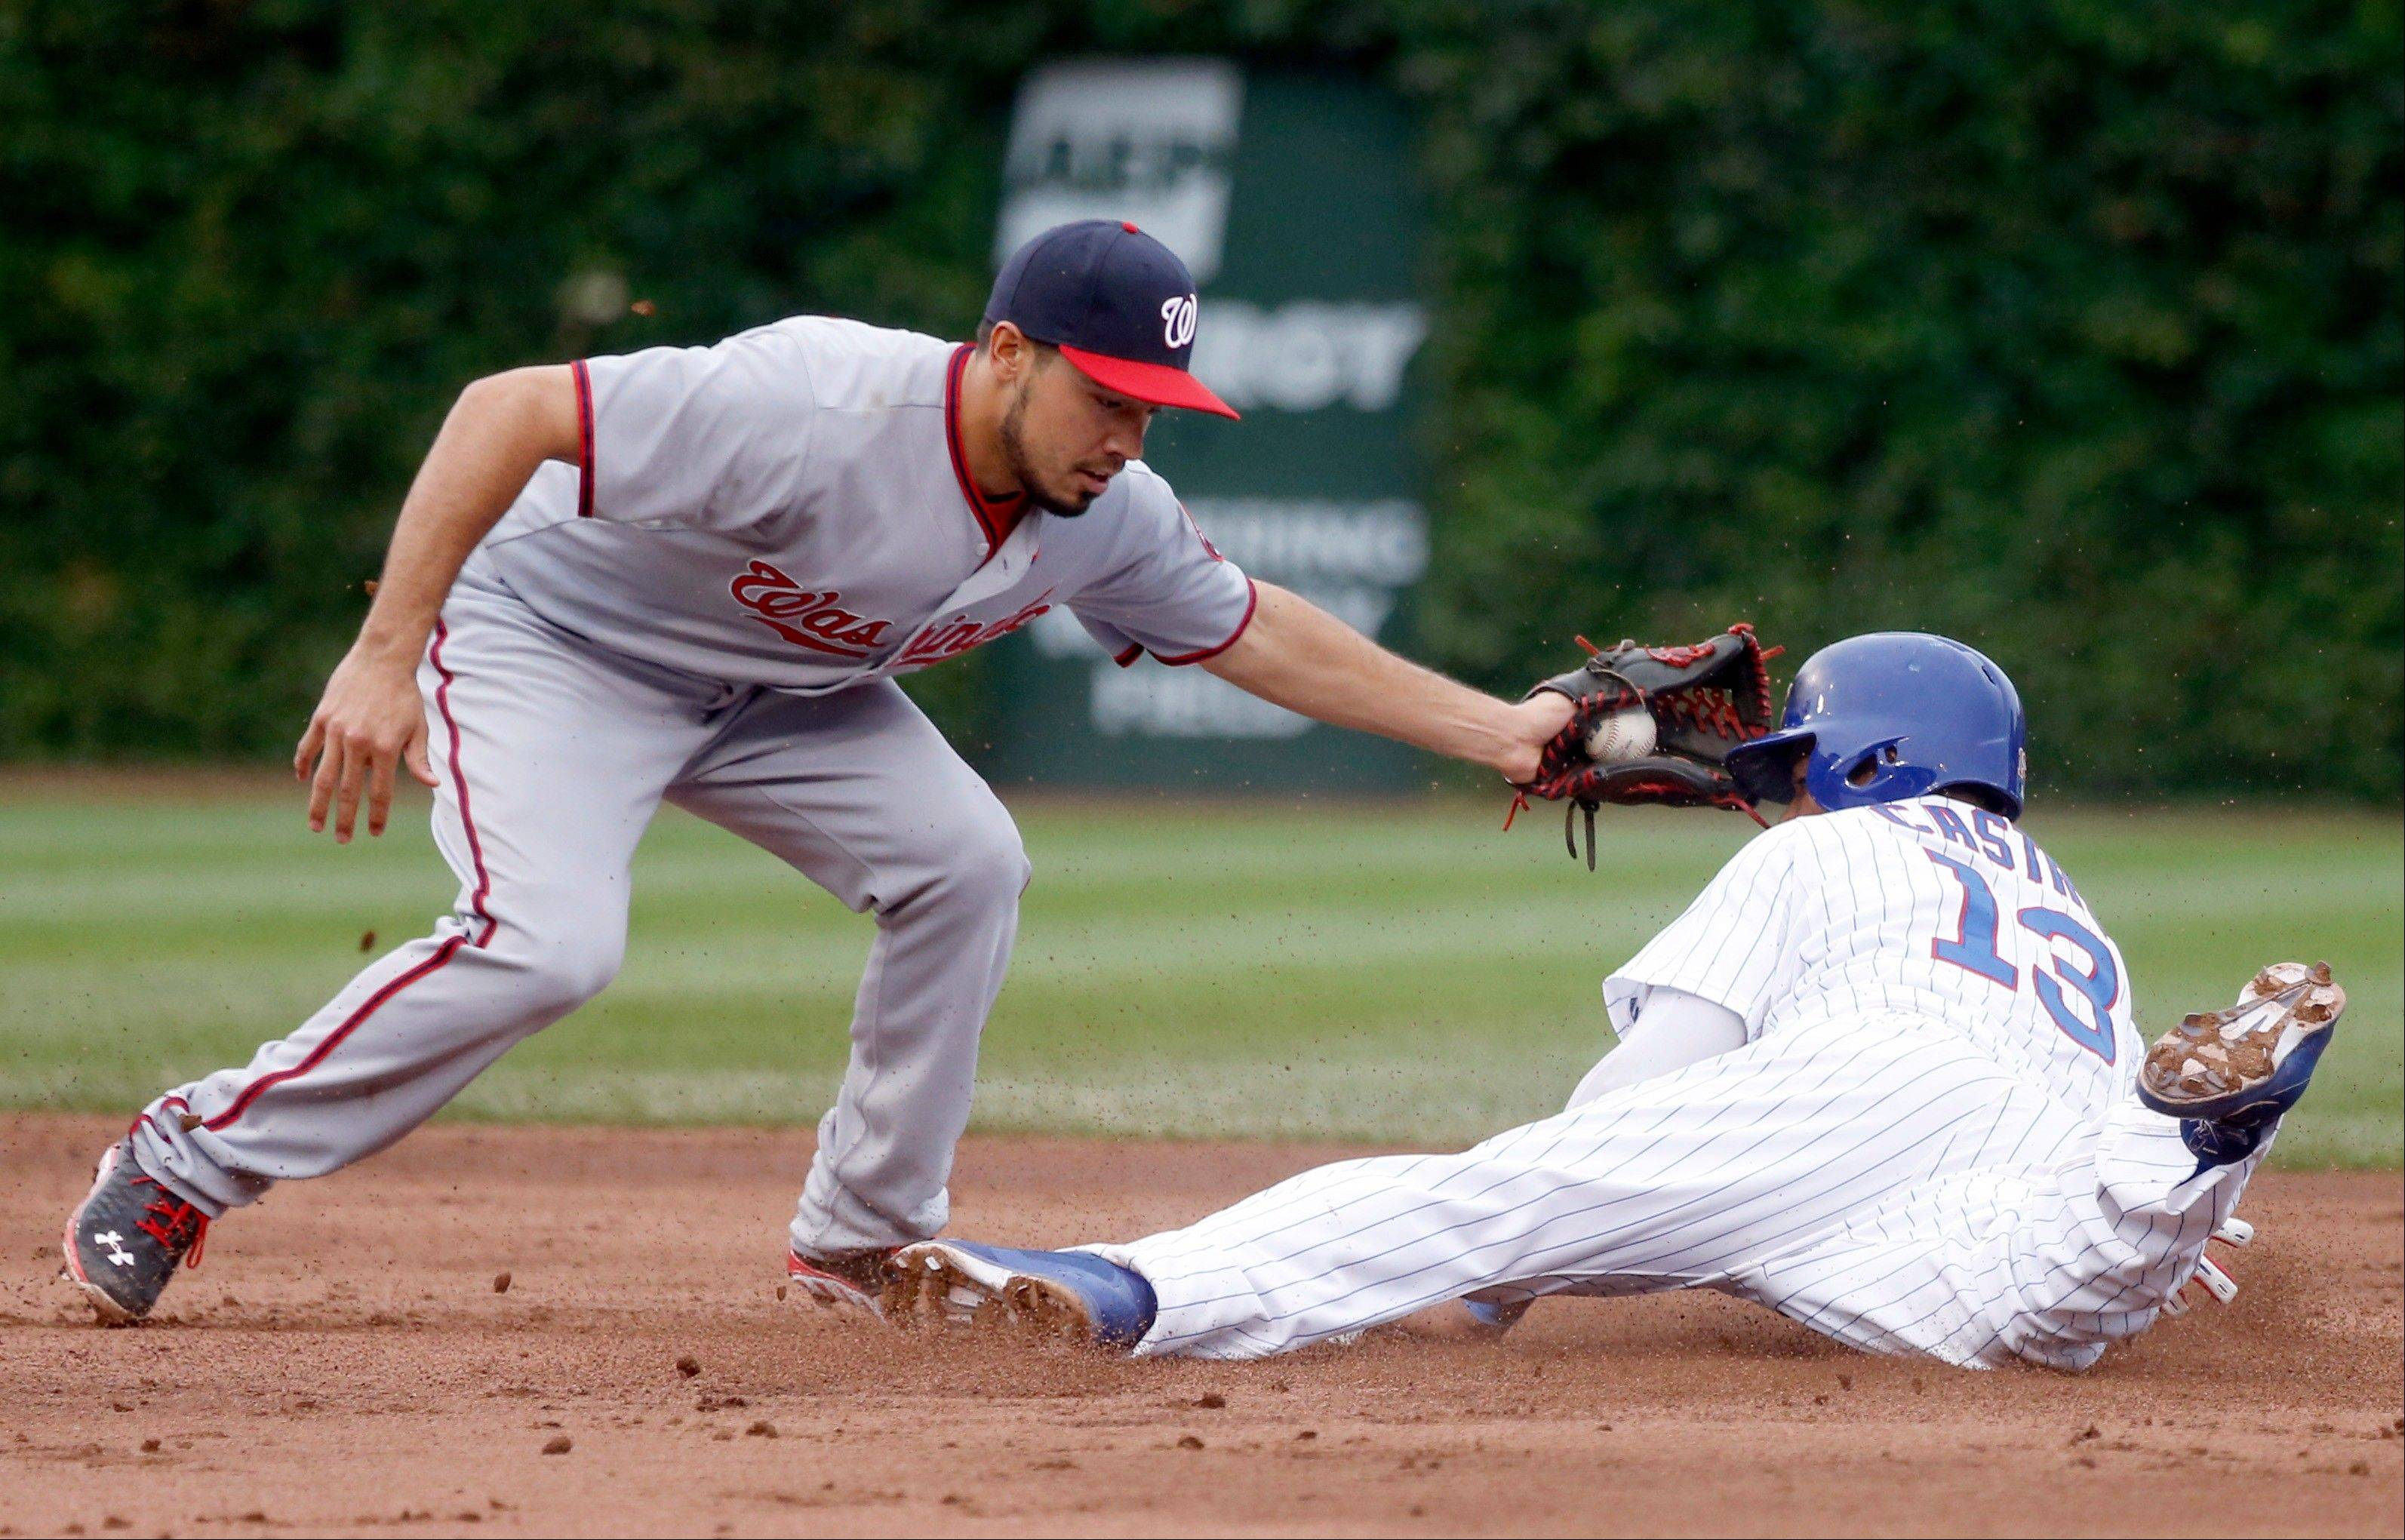 Nationals second baseman Anthony Rendon catches the Cubs� Starlin Castro trying to steal second during the third inning of Thursday�s game at Wrigley Field. Washington won in 13 innings.